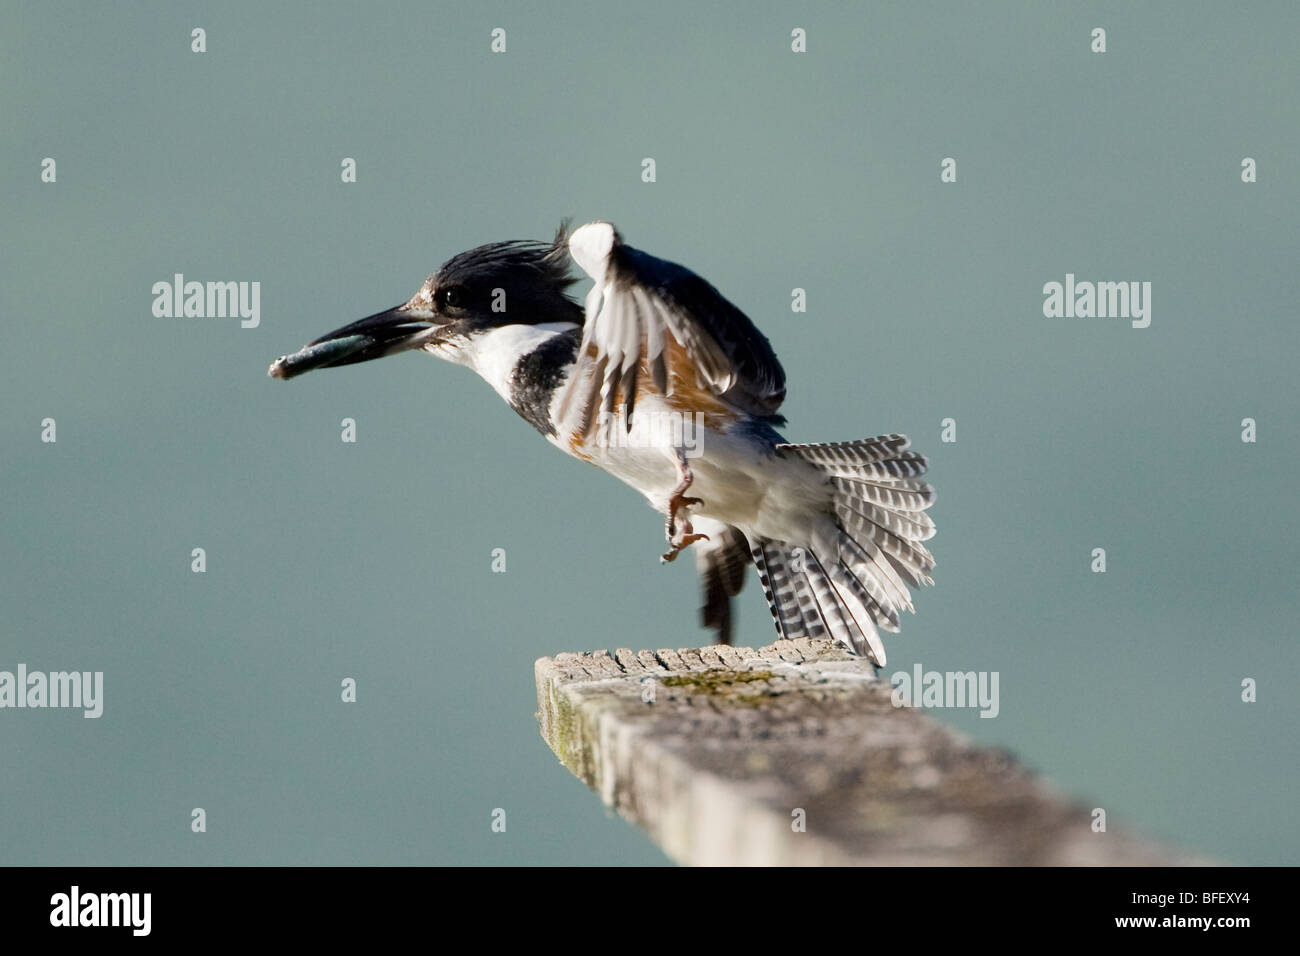 Female Belted Kingfisher (Ceryle alcyon) with a fish in her bill and wings out lifts off of her perch on a dock - Stock Image